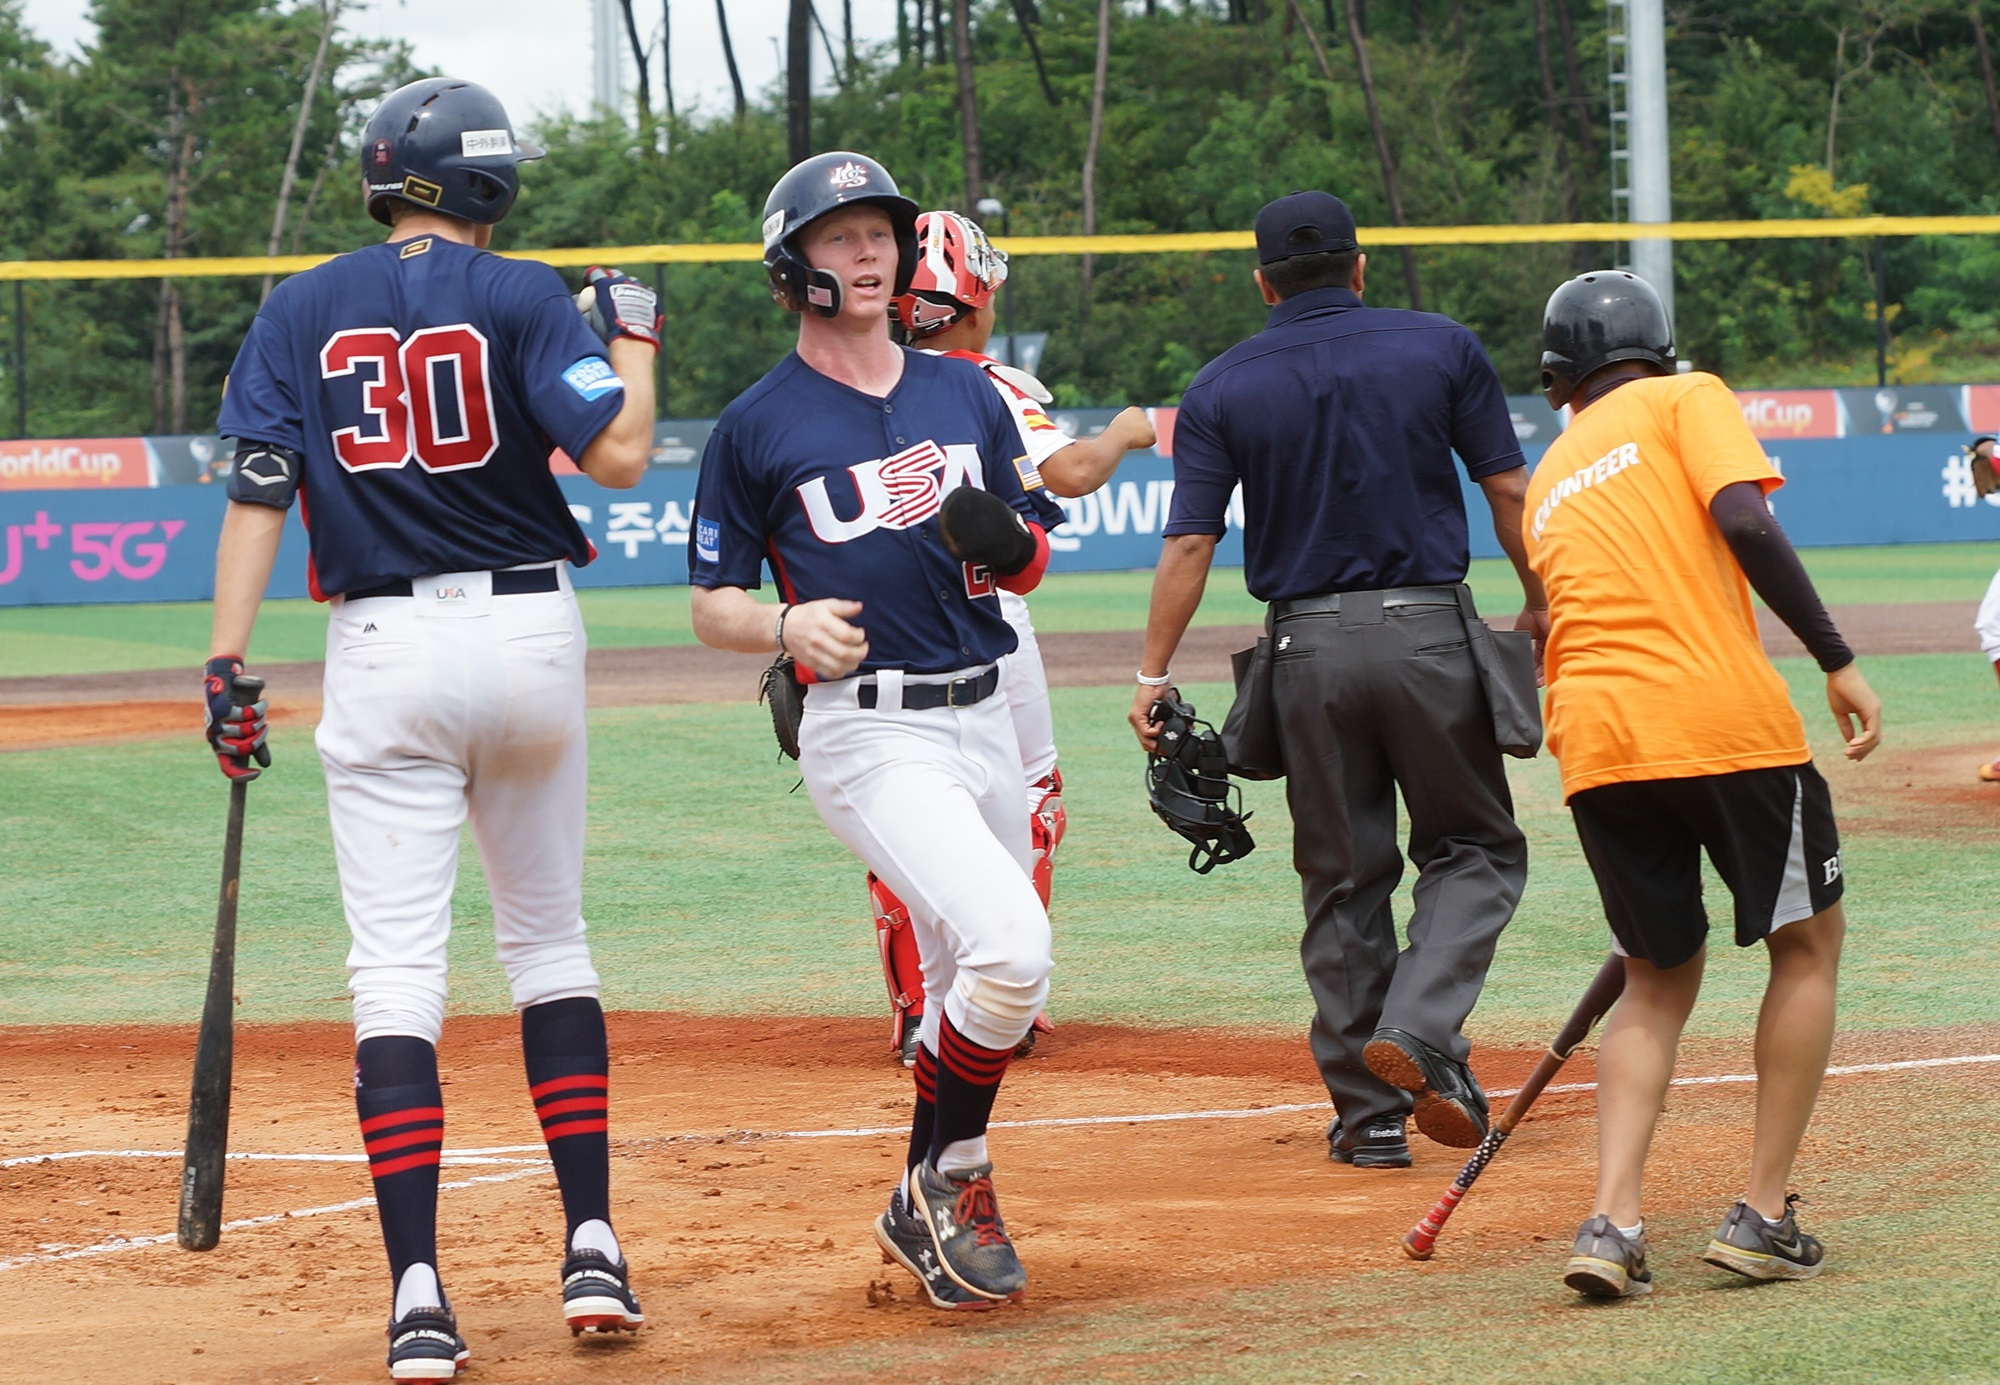 The USA scores in the first inning